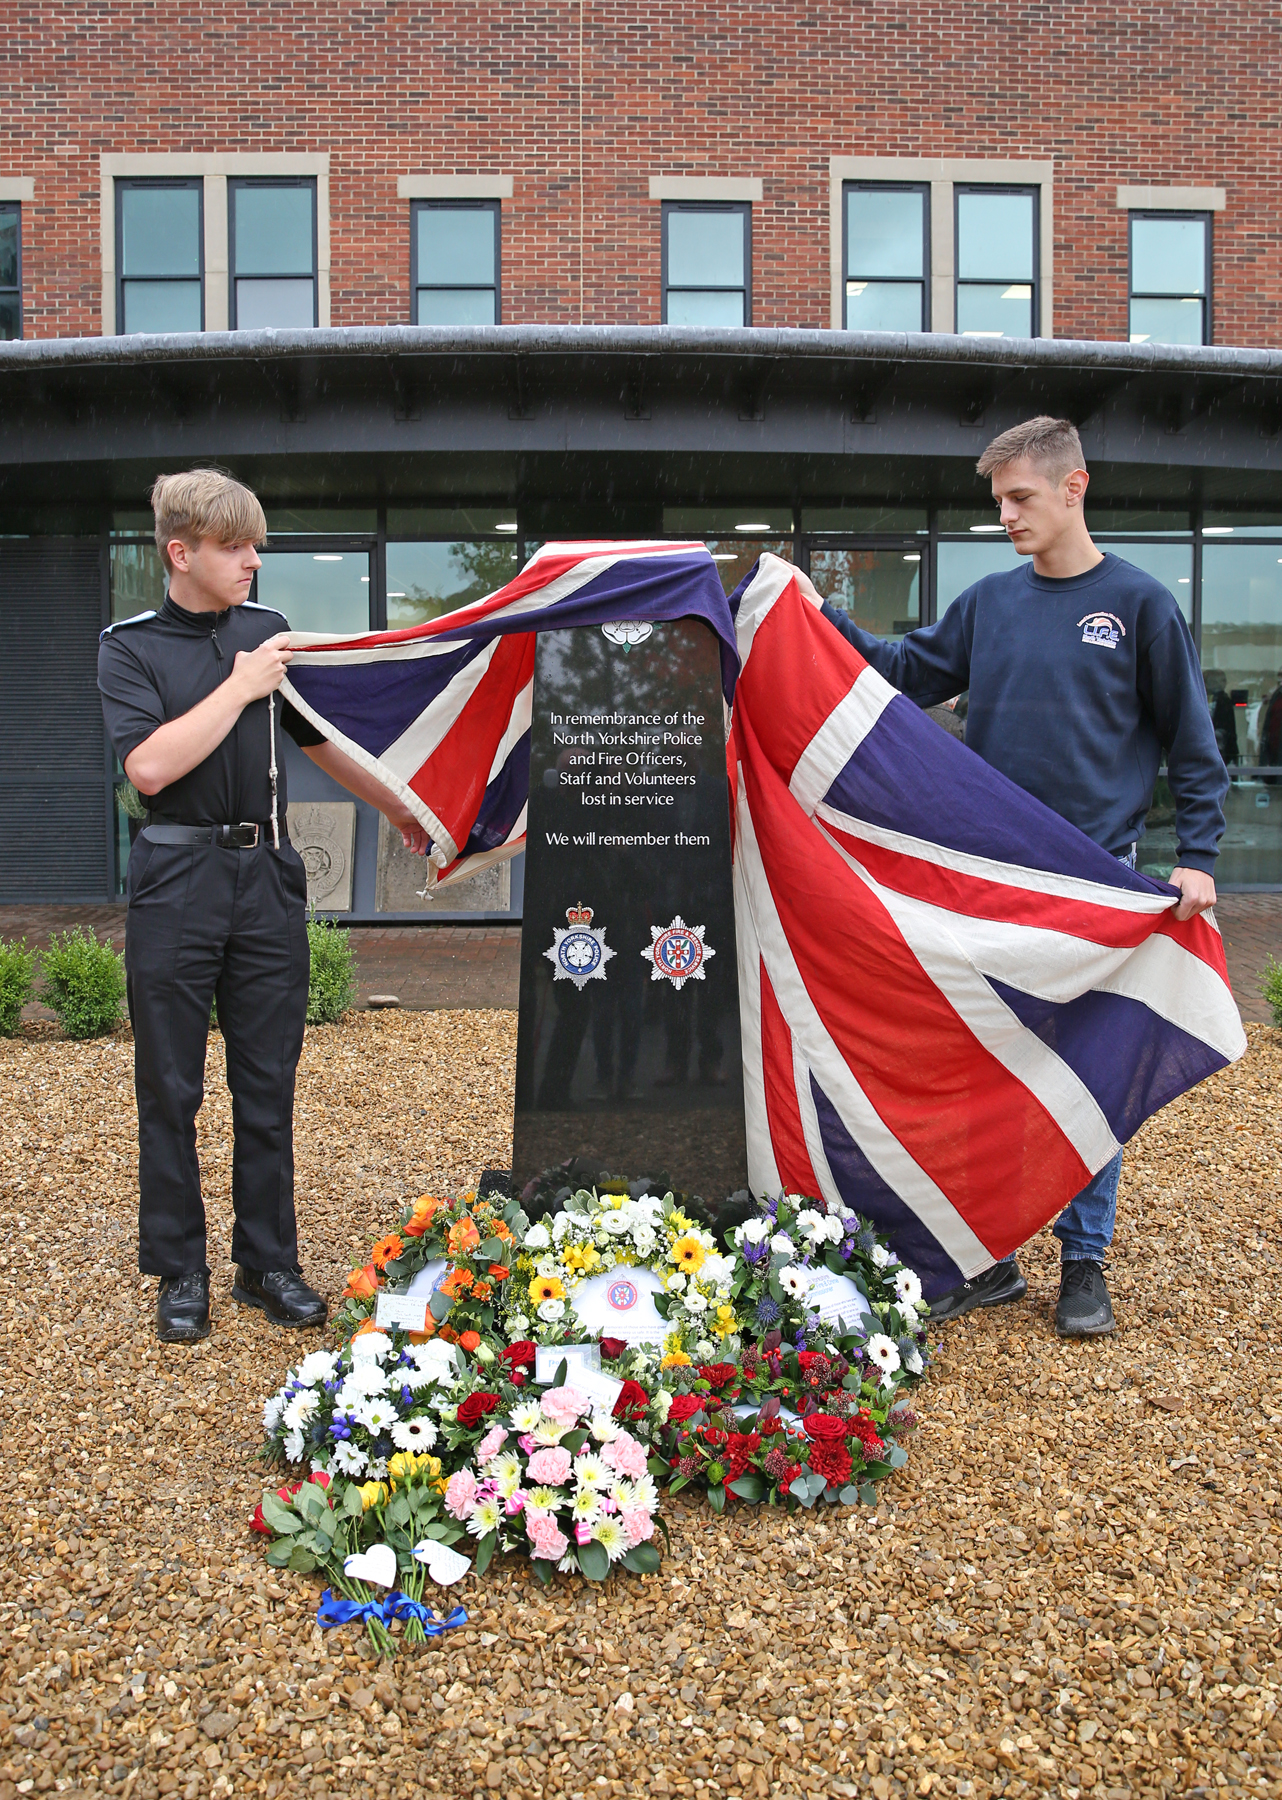 Police Cadet Harry Watters and Jacob Hudson ('LIFE' Course with the Fire Service) who unveiled the memorial.